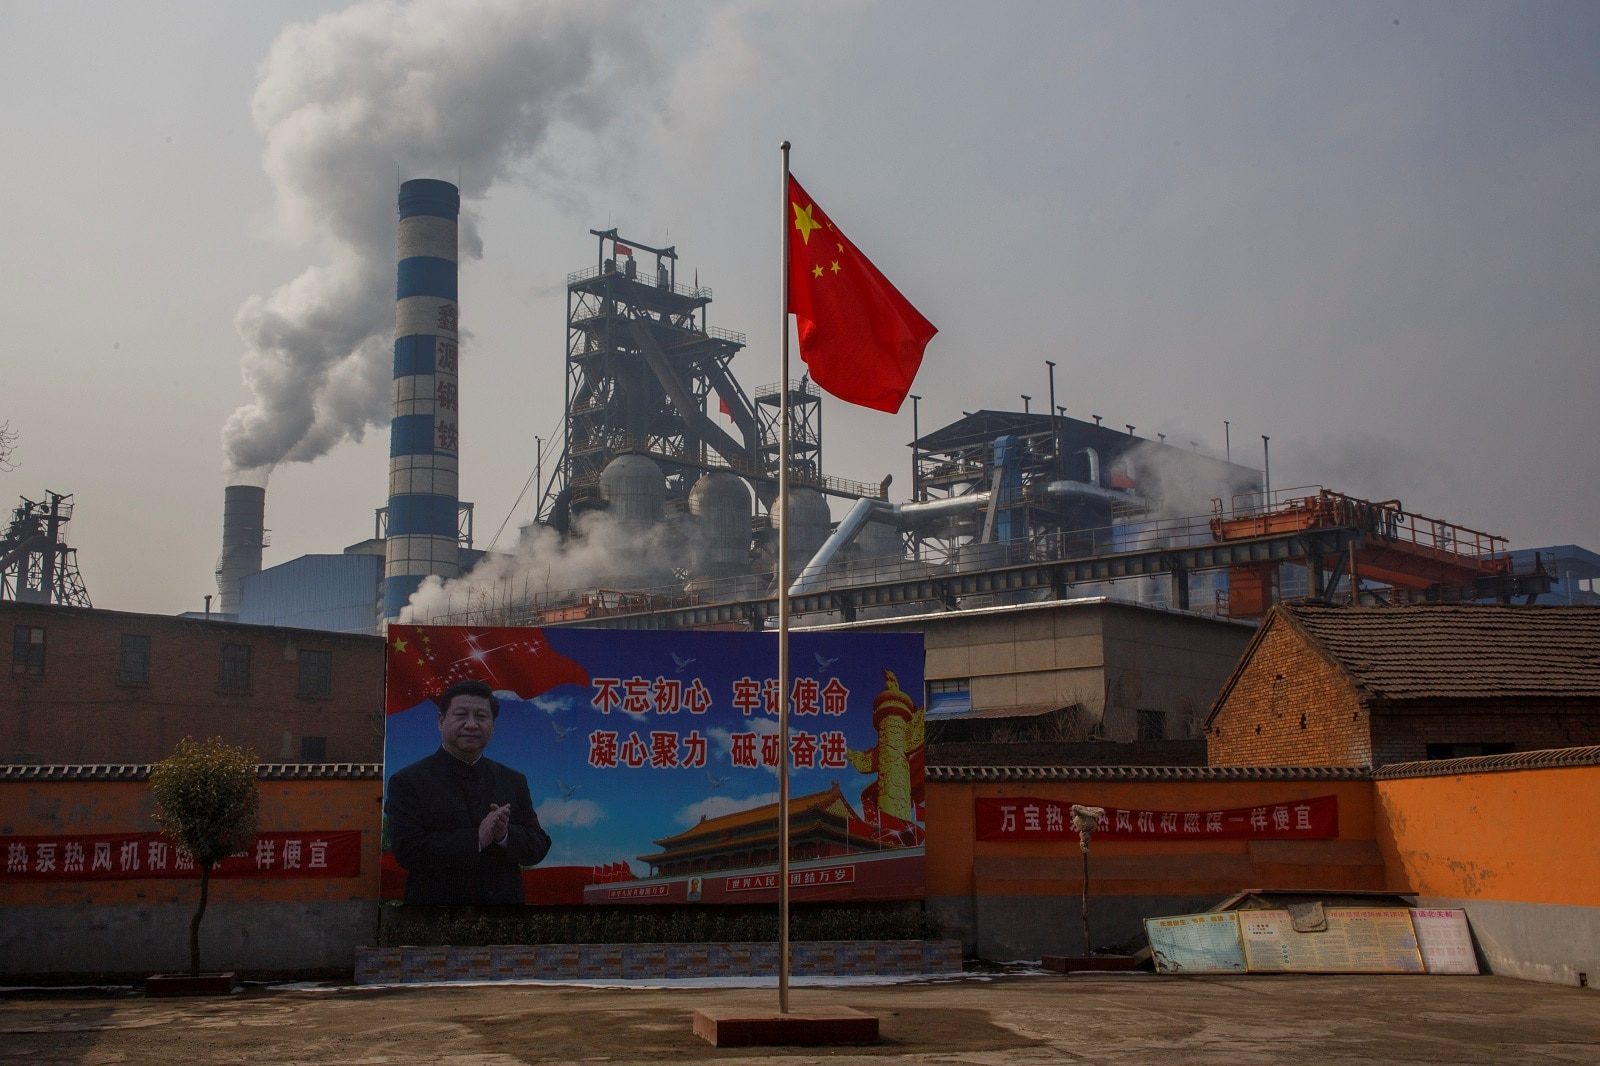 A poster showing Chinese President Xi Jinping is seen in front of the Xinyuan Steel plant in Anyang, Henan province, China February 19, 2019. REUTERS/Thomas Peter